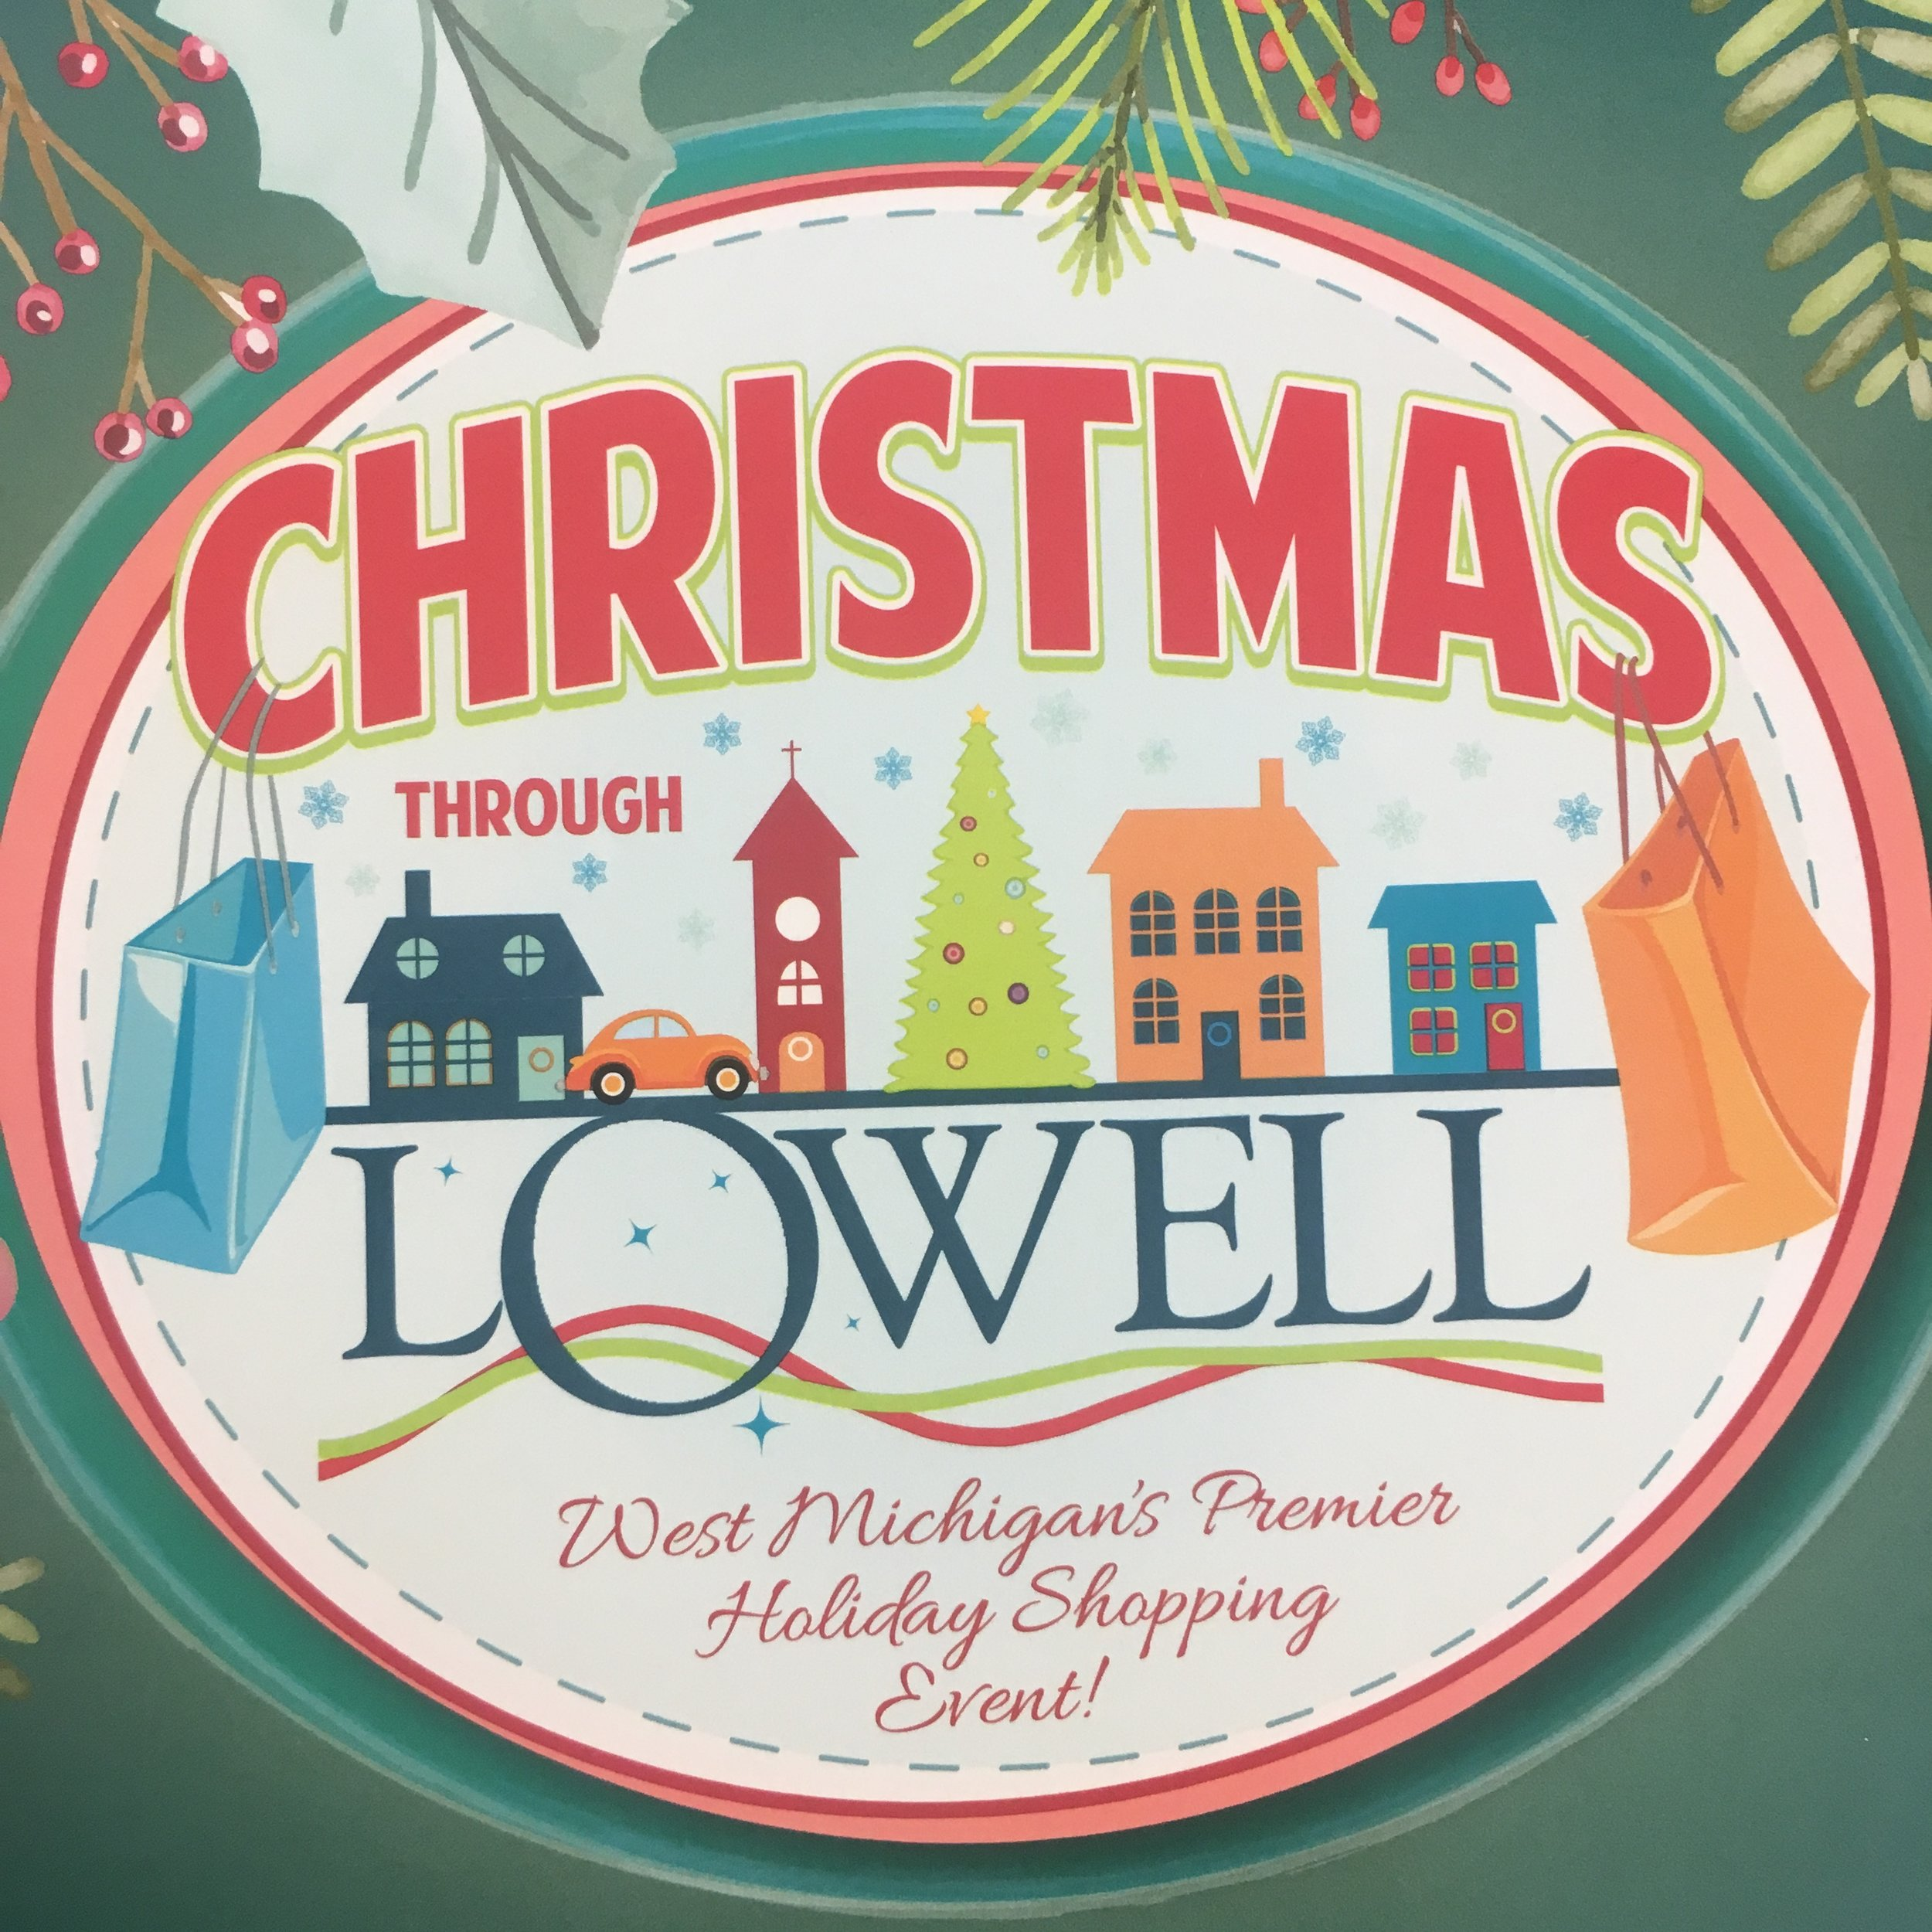 christmasthroughlowell.png